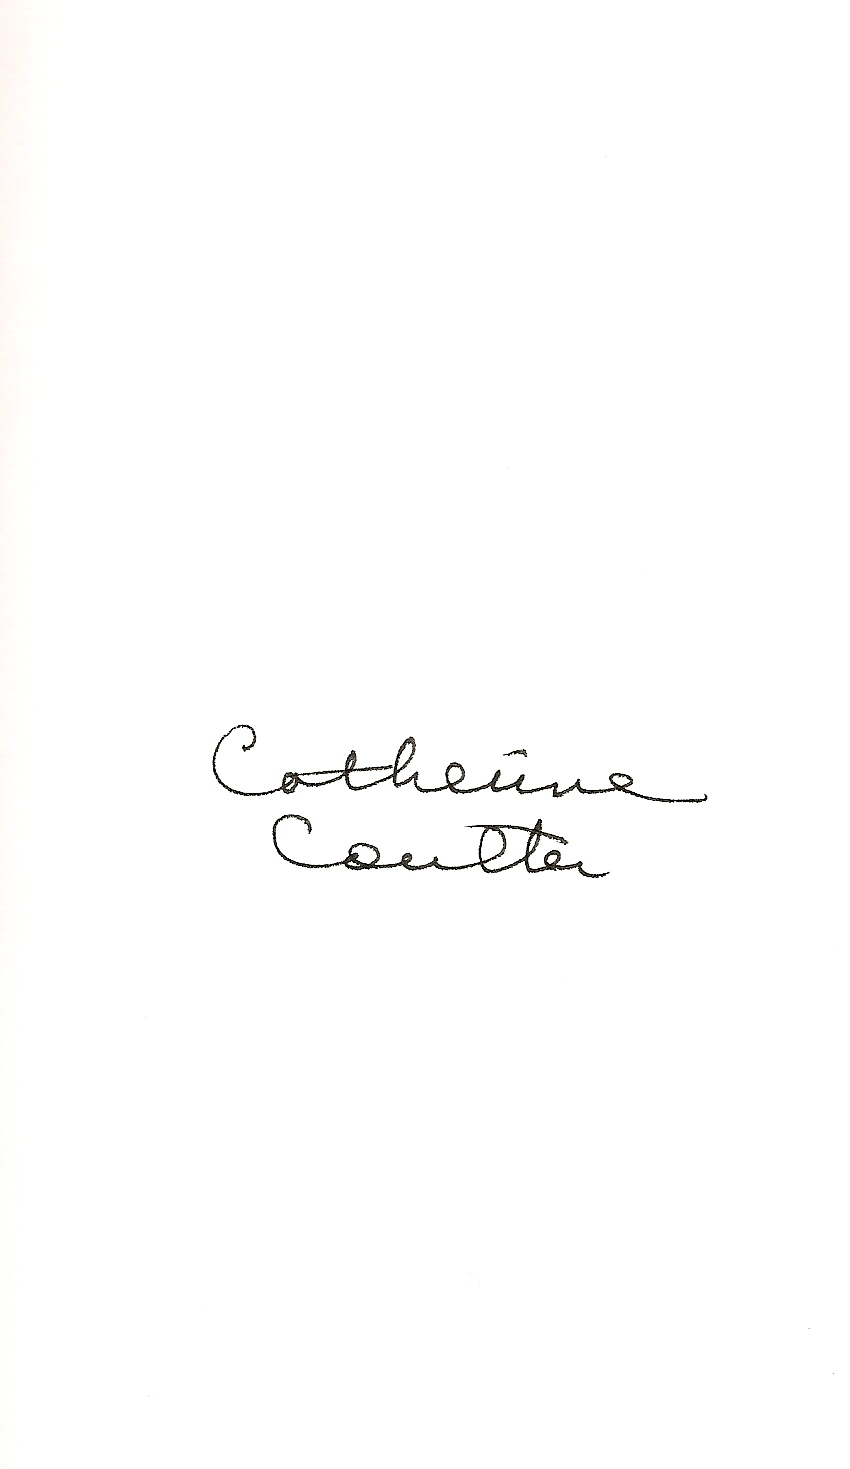 Catherine Coulter